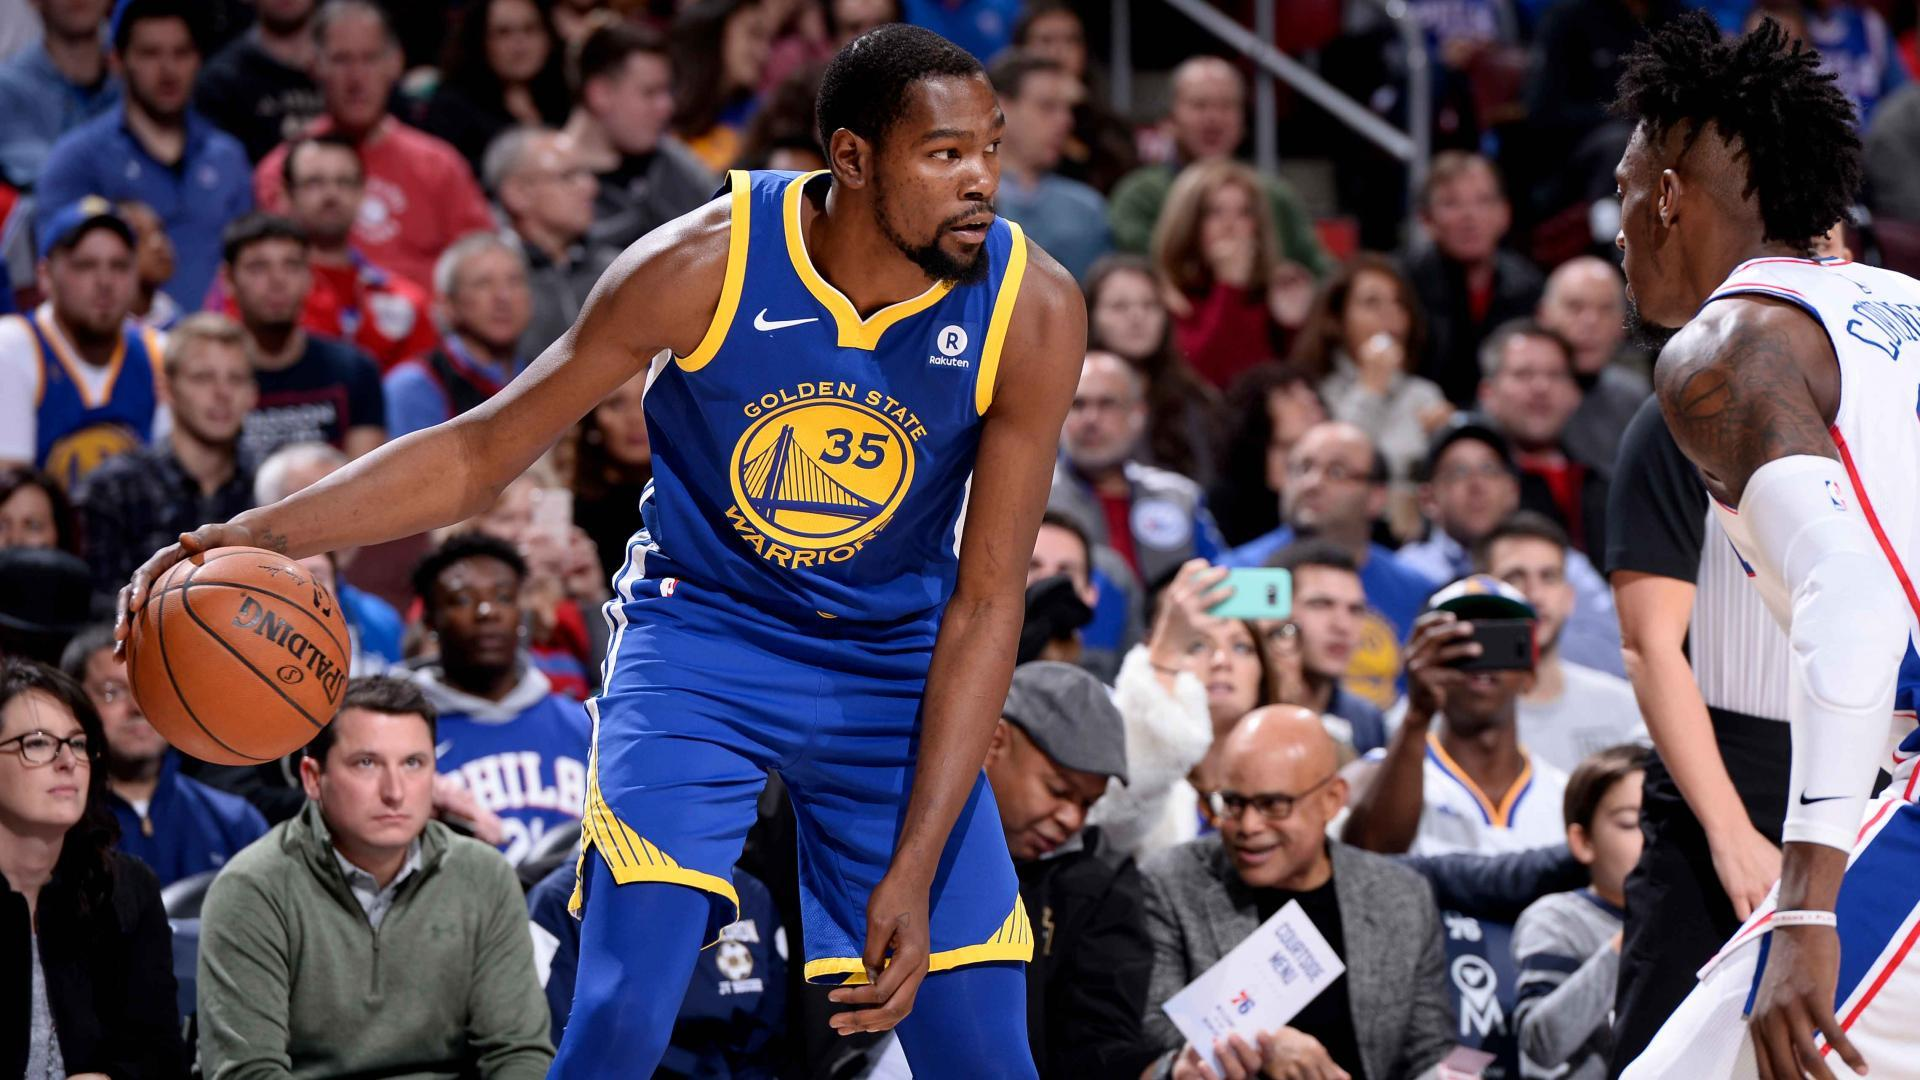 golden-state-warriors-kevin-durant-to-rest-sunday-with-sprained-ankle